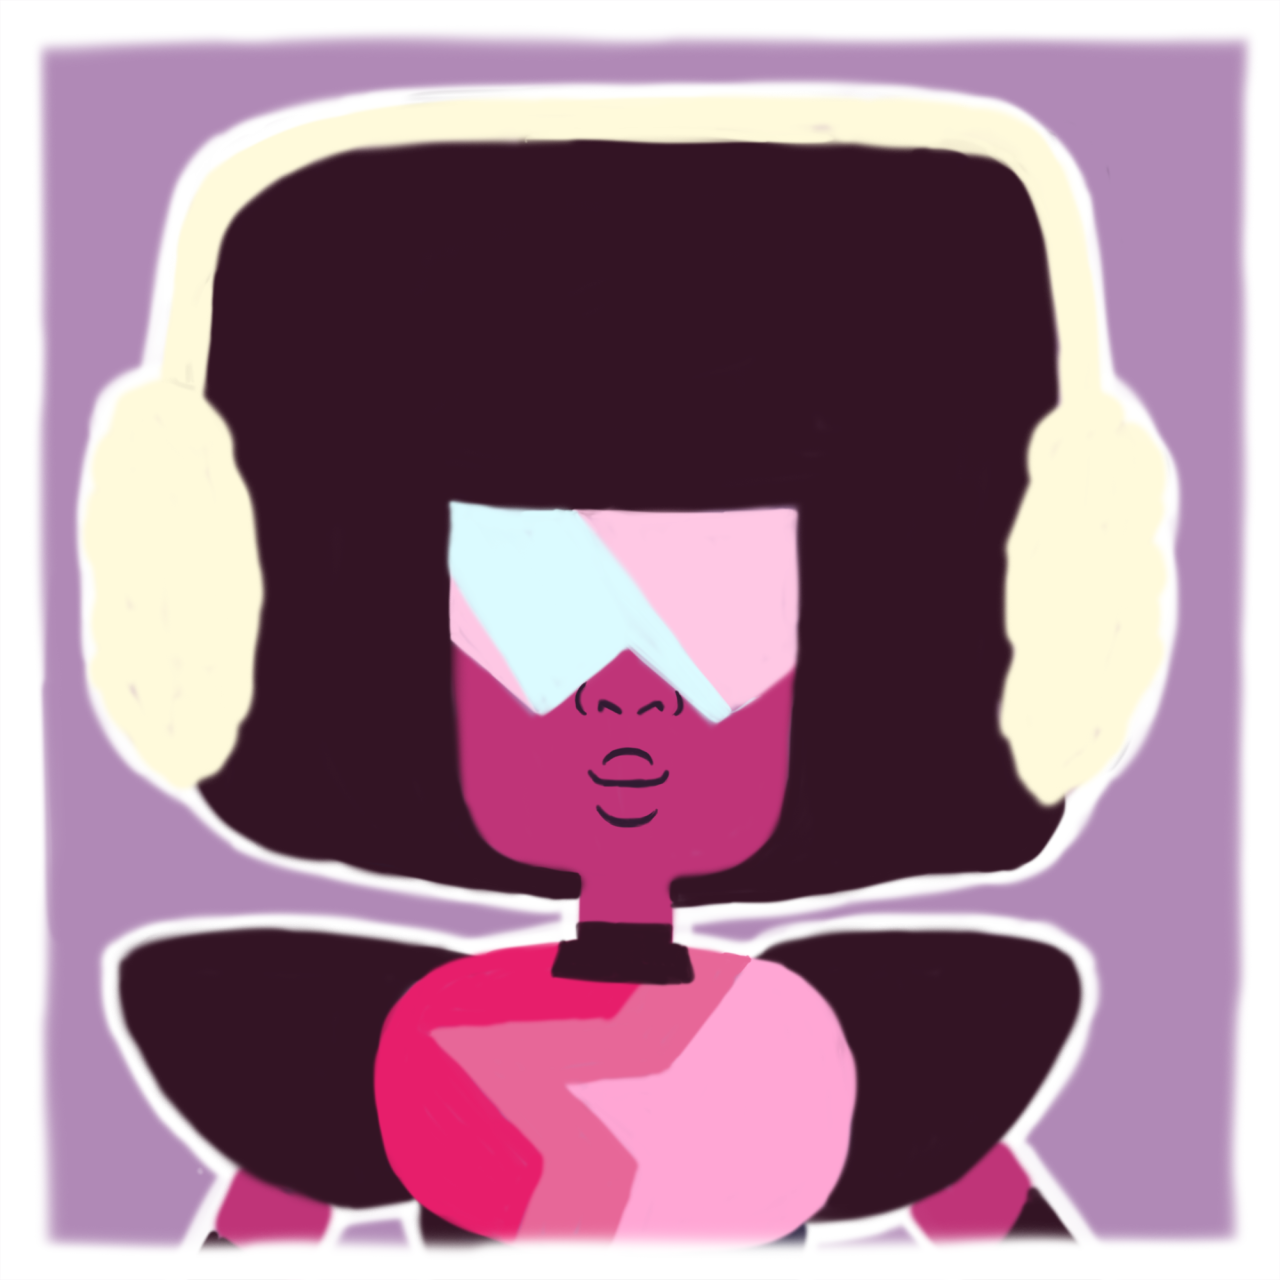 Pastel winter gems! Please feel free to use as icons with credit.